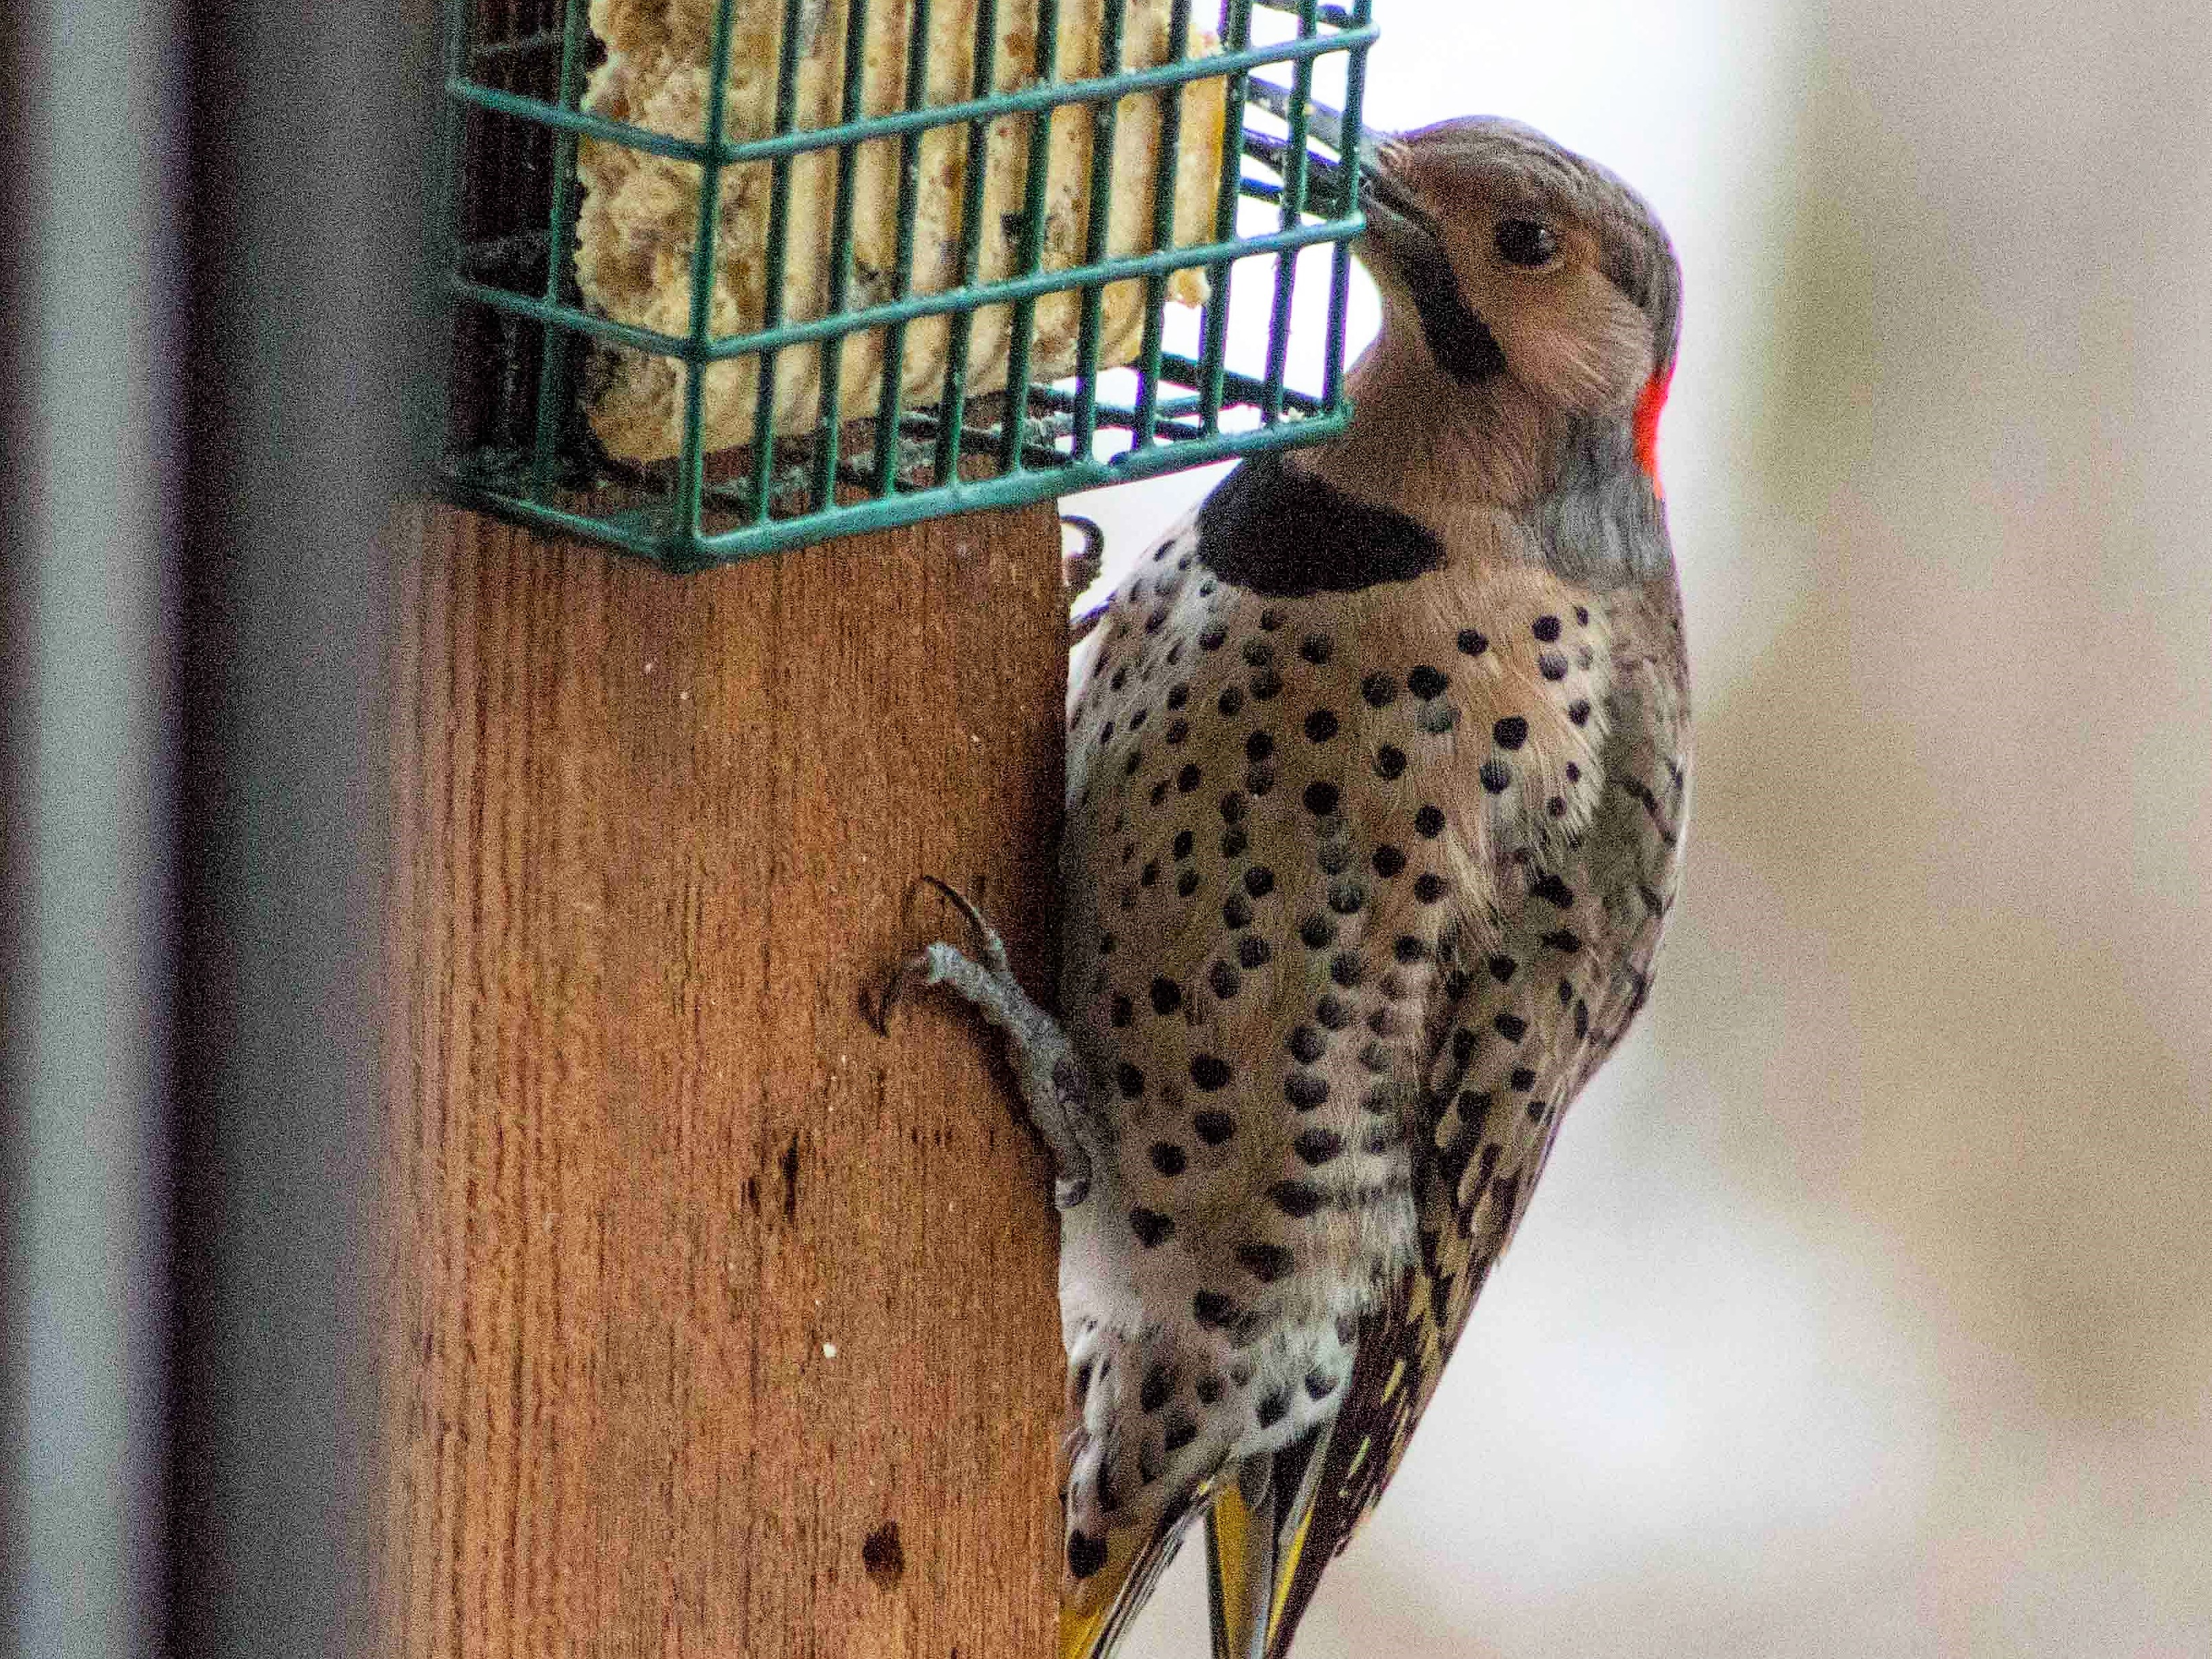 Flicker – In the eastern U.S., Male flickers have black moustaches in addition to the red nape patch and yellow feathers.